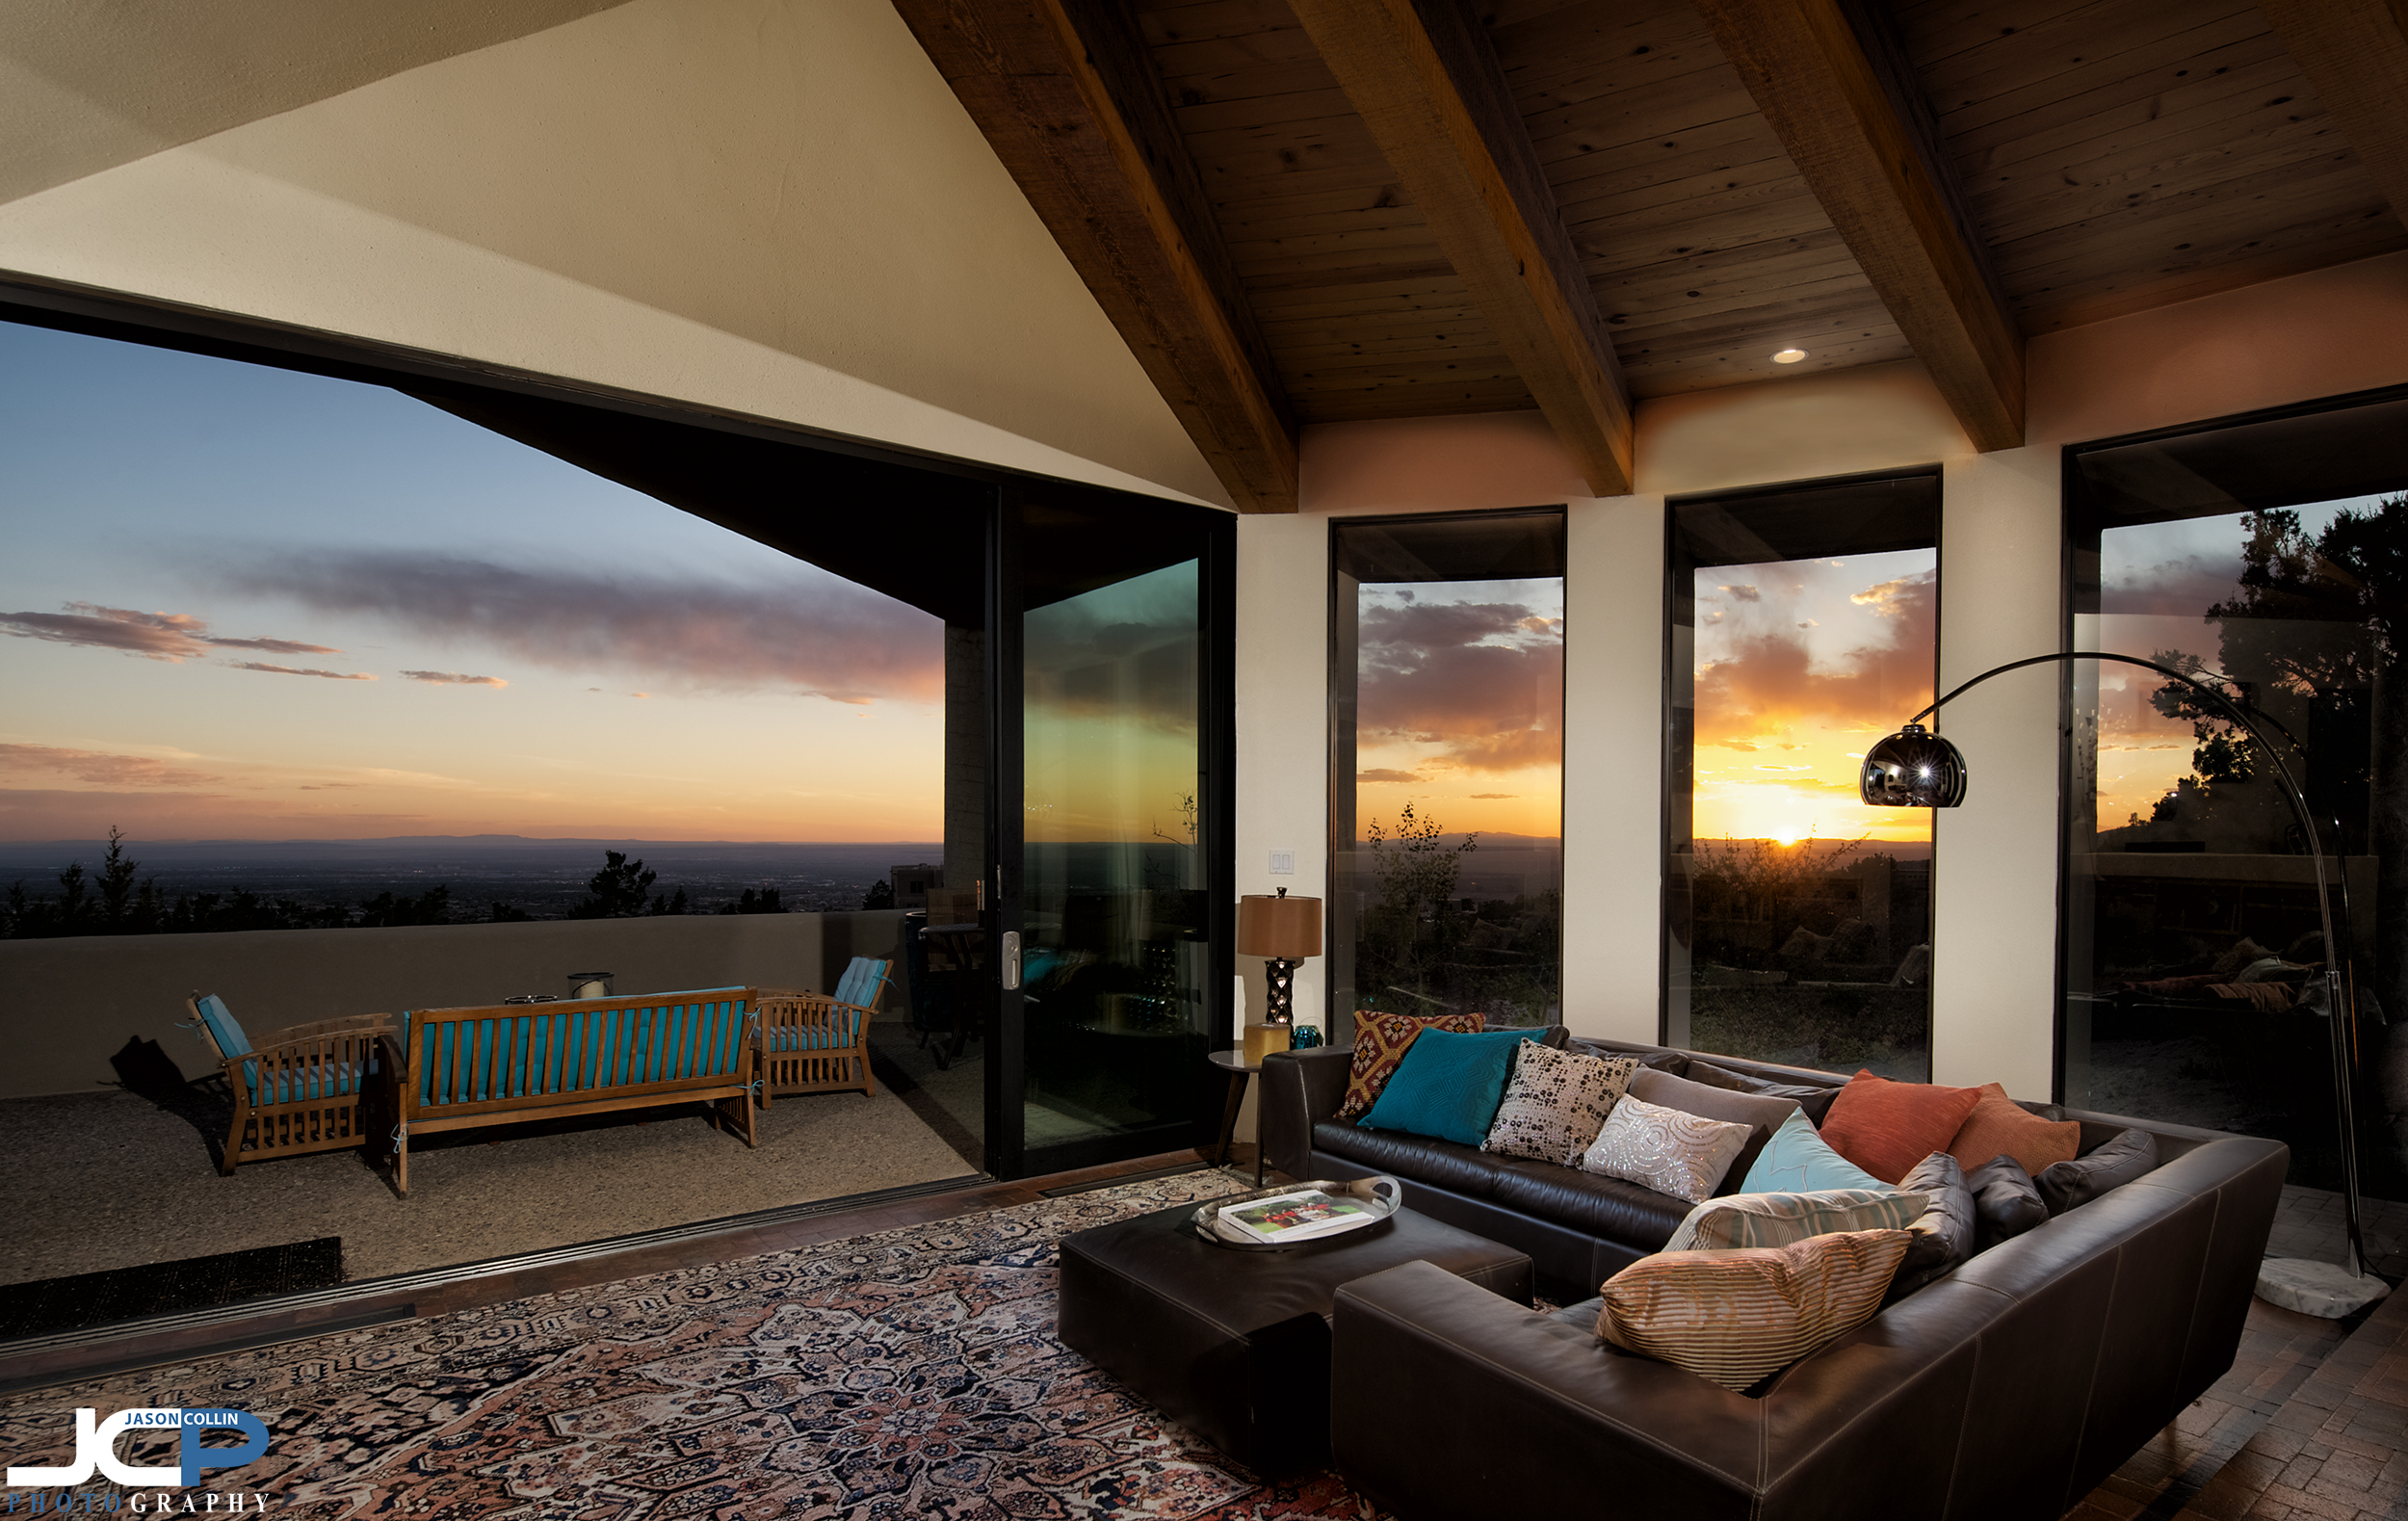 The stunning sunset view from this luxury architectural home in Sandia Heights, Albuquerque, New Mexico - photo made with the flambient shooting and editing technique using a Nikon D750 and a Tamron 15-30mm f/2.8 SP lens